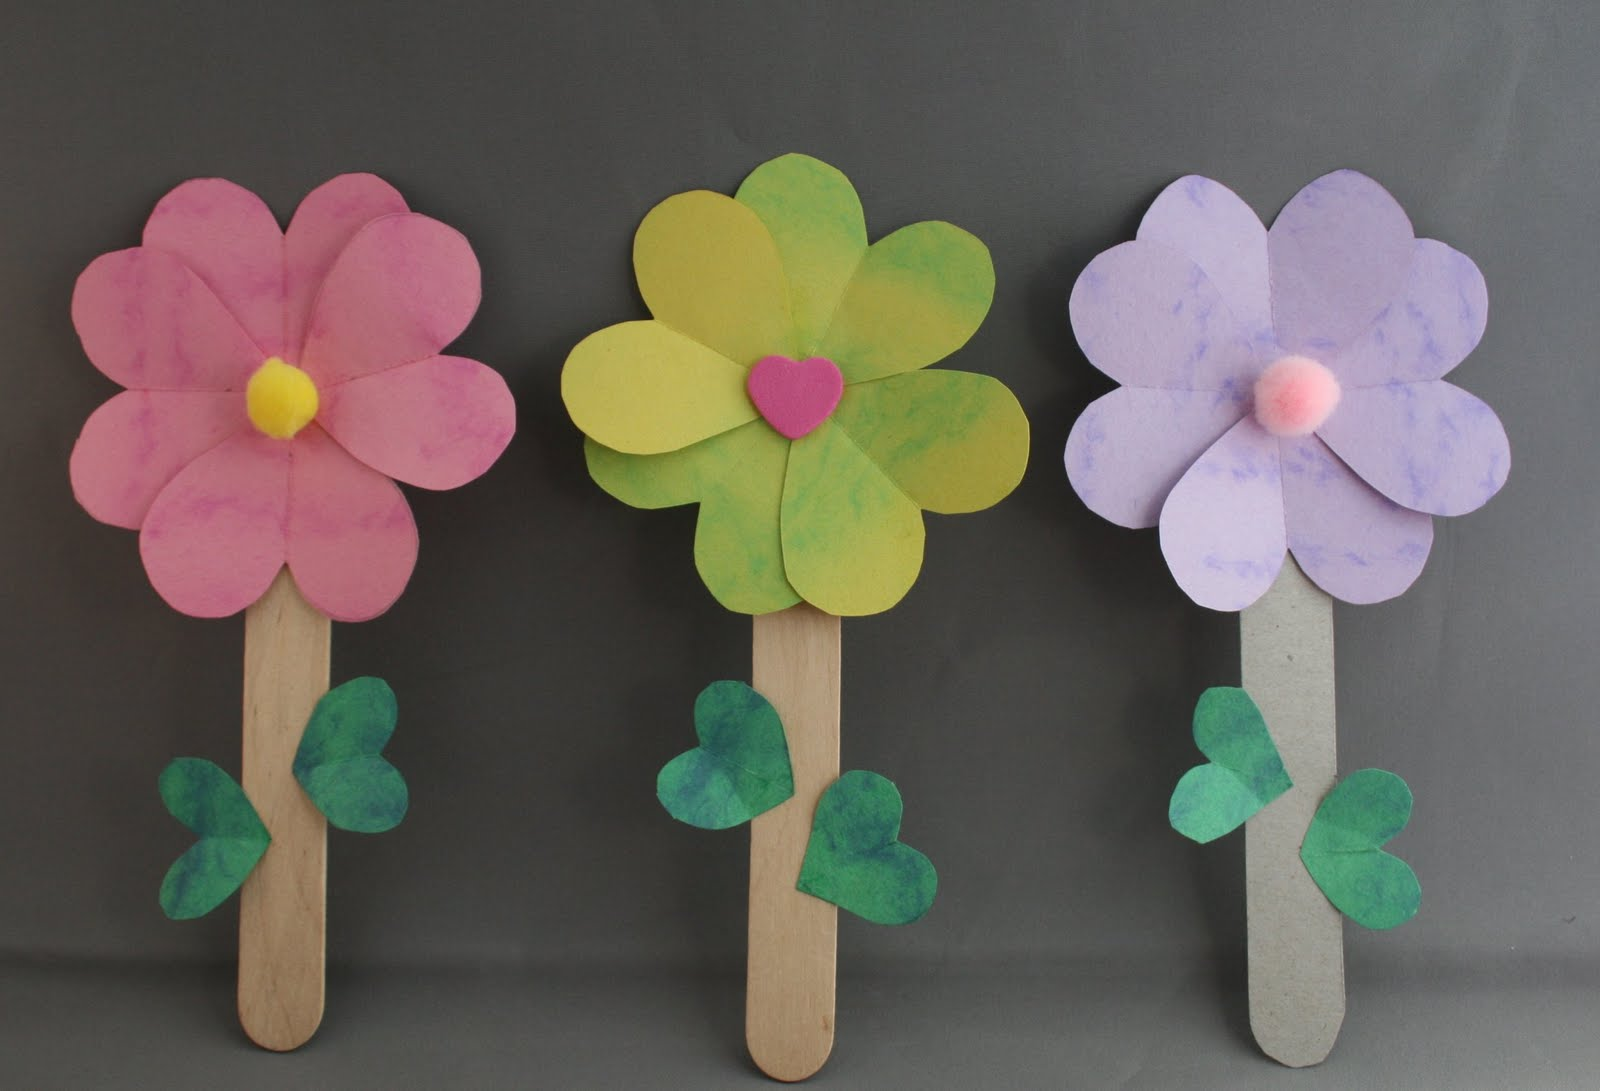 Ruhi Crafts  The Flowers of One Garden The construction details are include on the site so I will not repeat them   http   www familycorner com family kids crafts heart flowers shtml